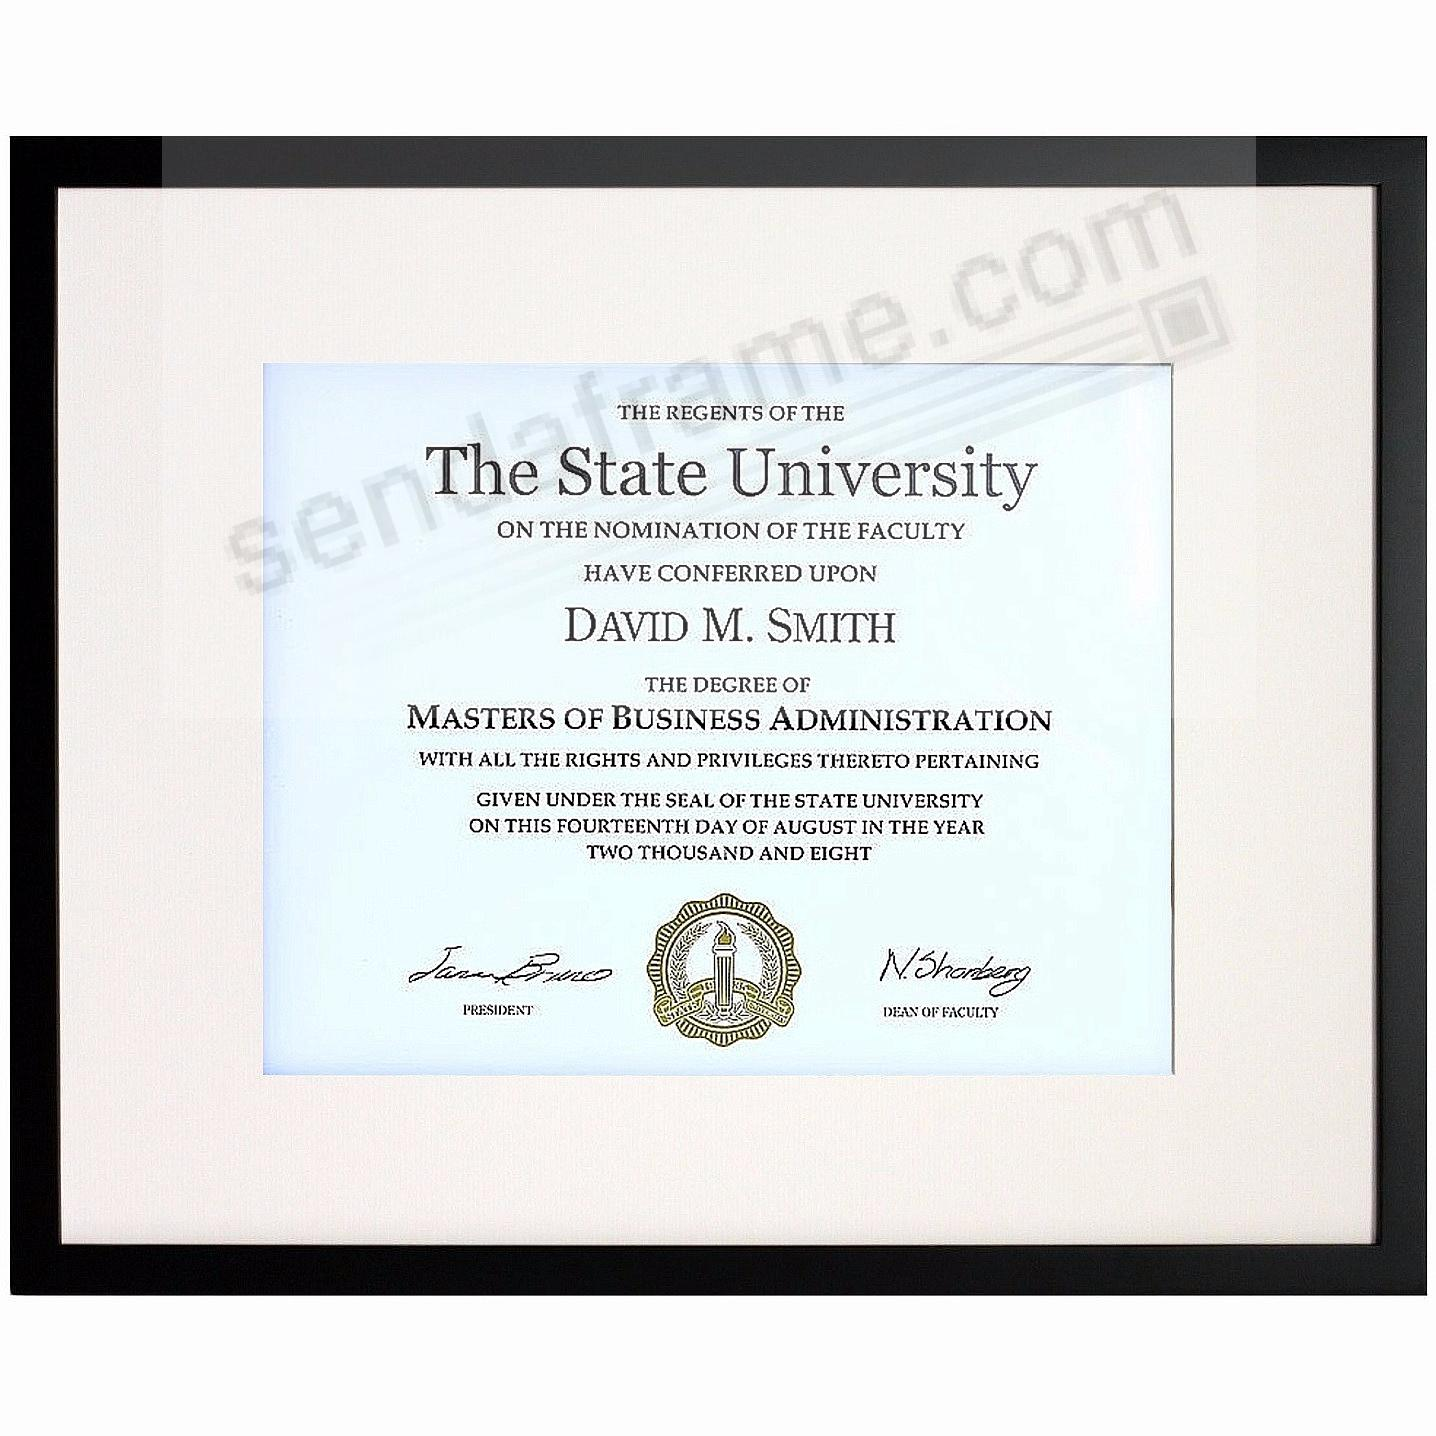 Matte-Black TRIBECA archival matted wood frame 11x14/8½x11 from ARTCARE® by Nielsen®